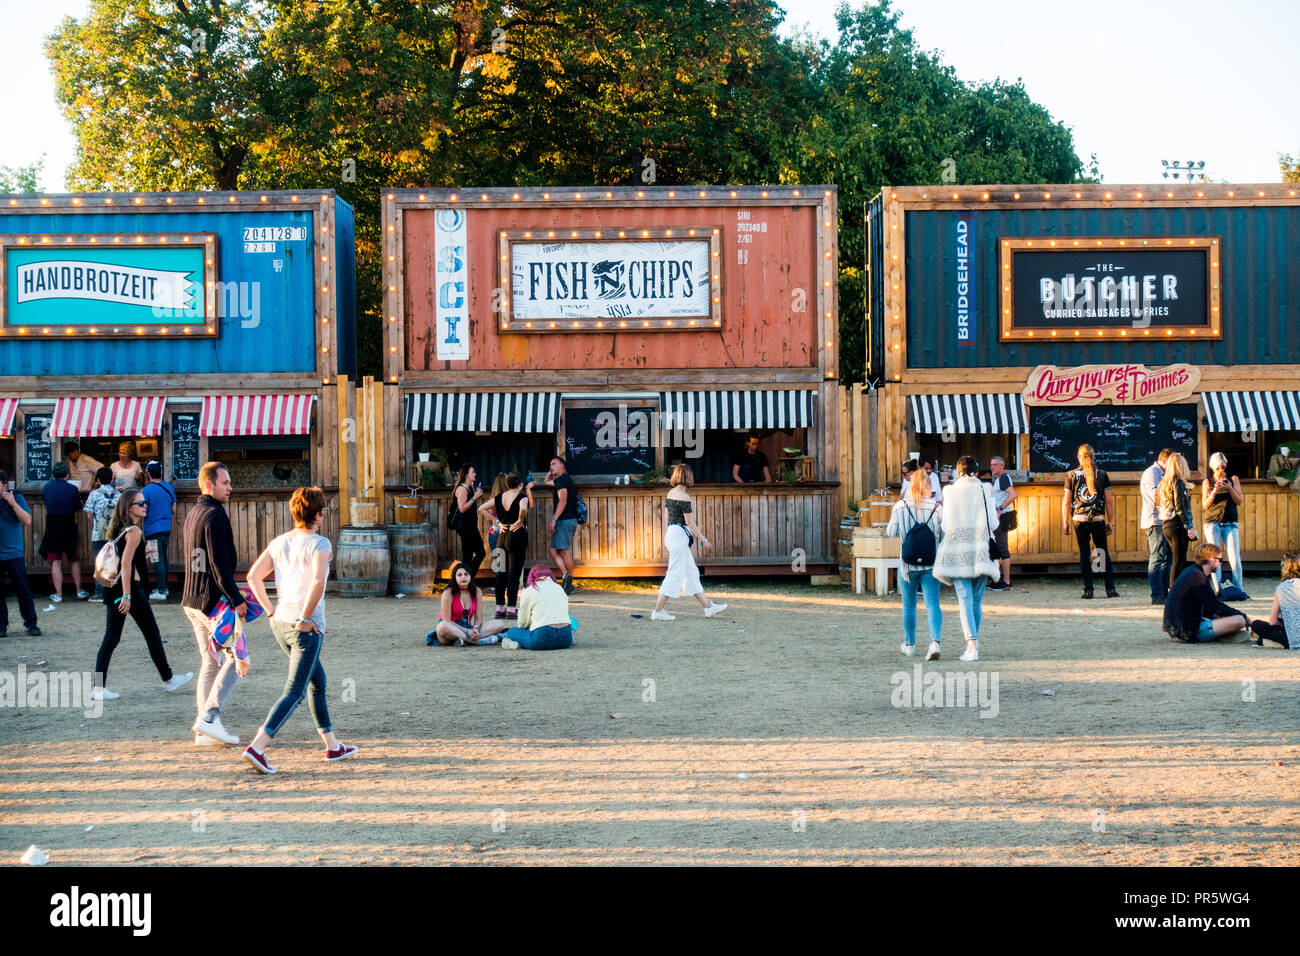 Lollapalooza music festival 2018 Berlin - Stock Image